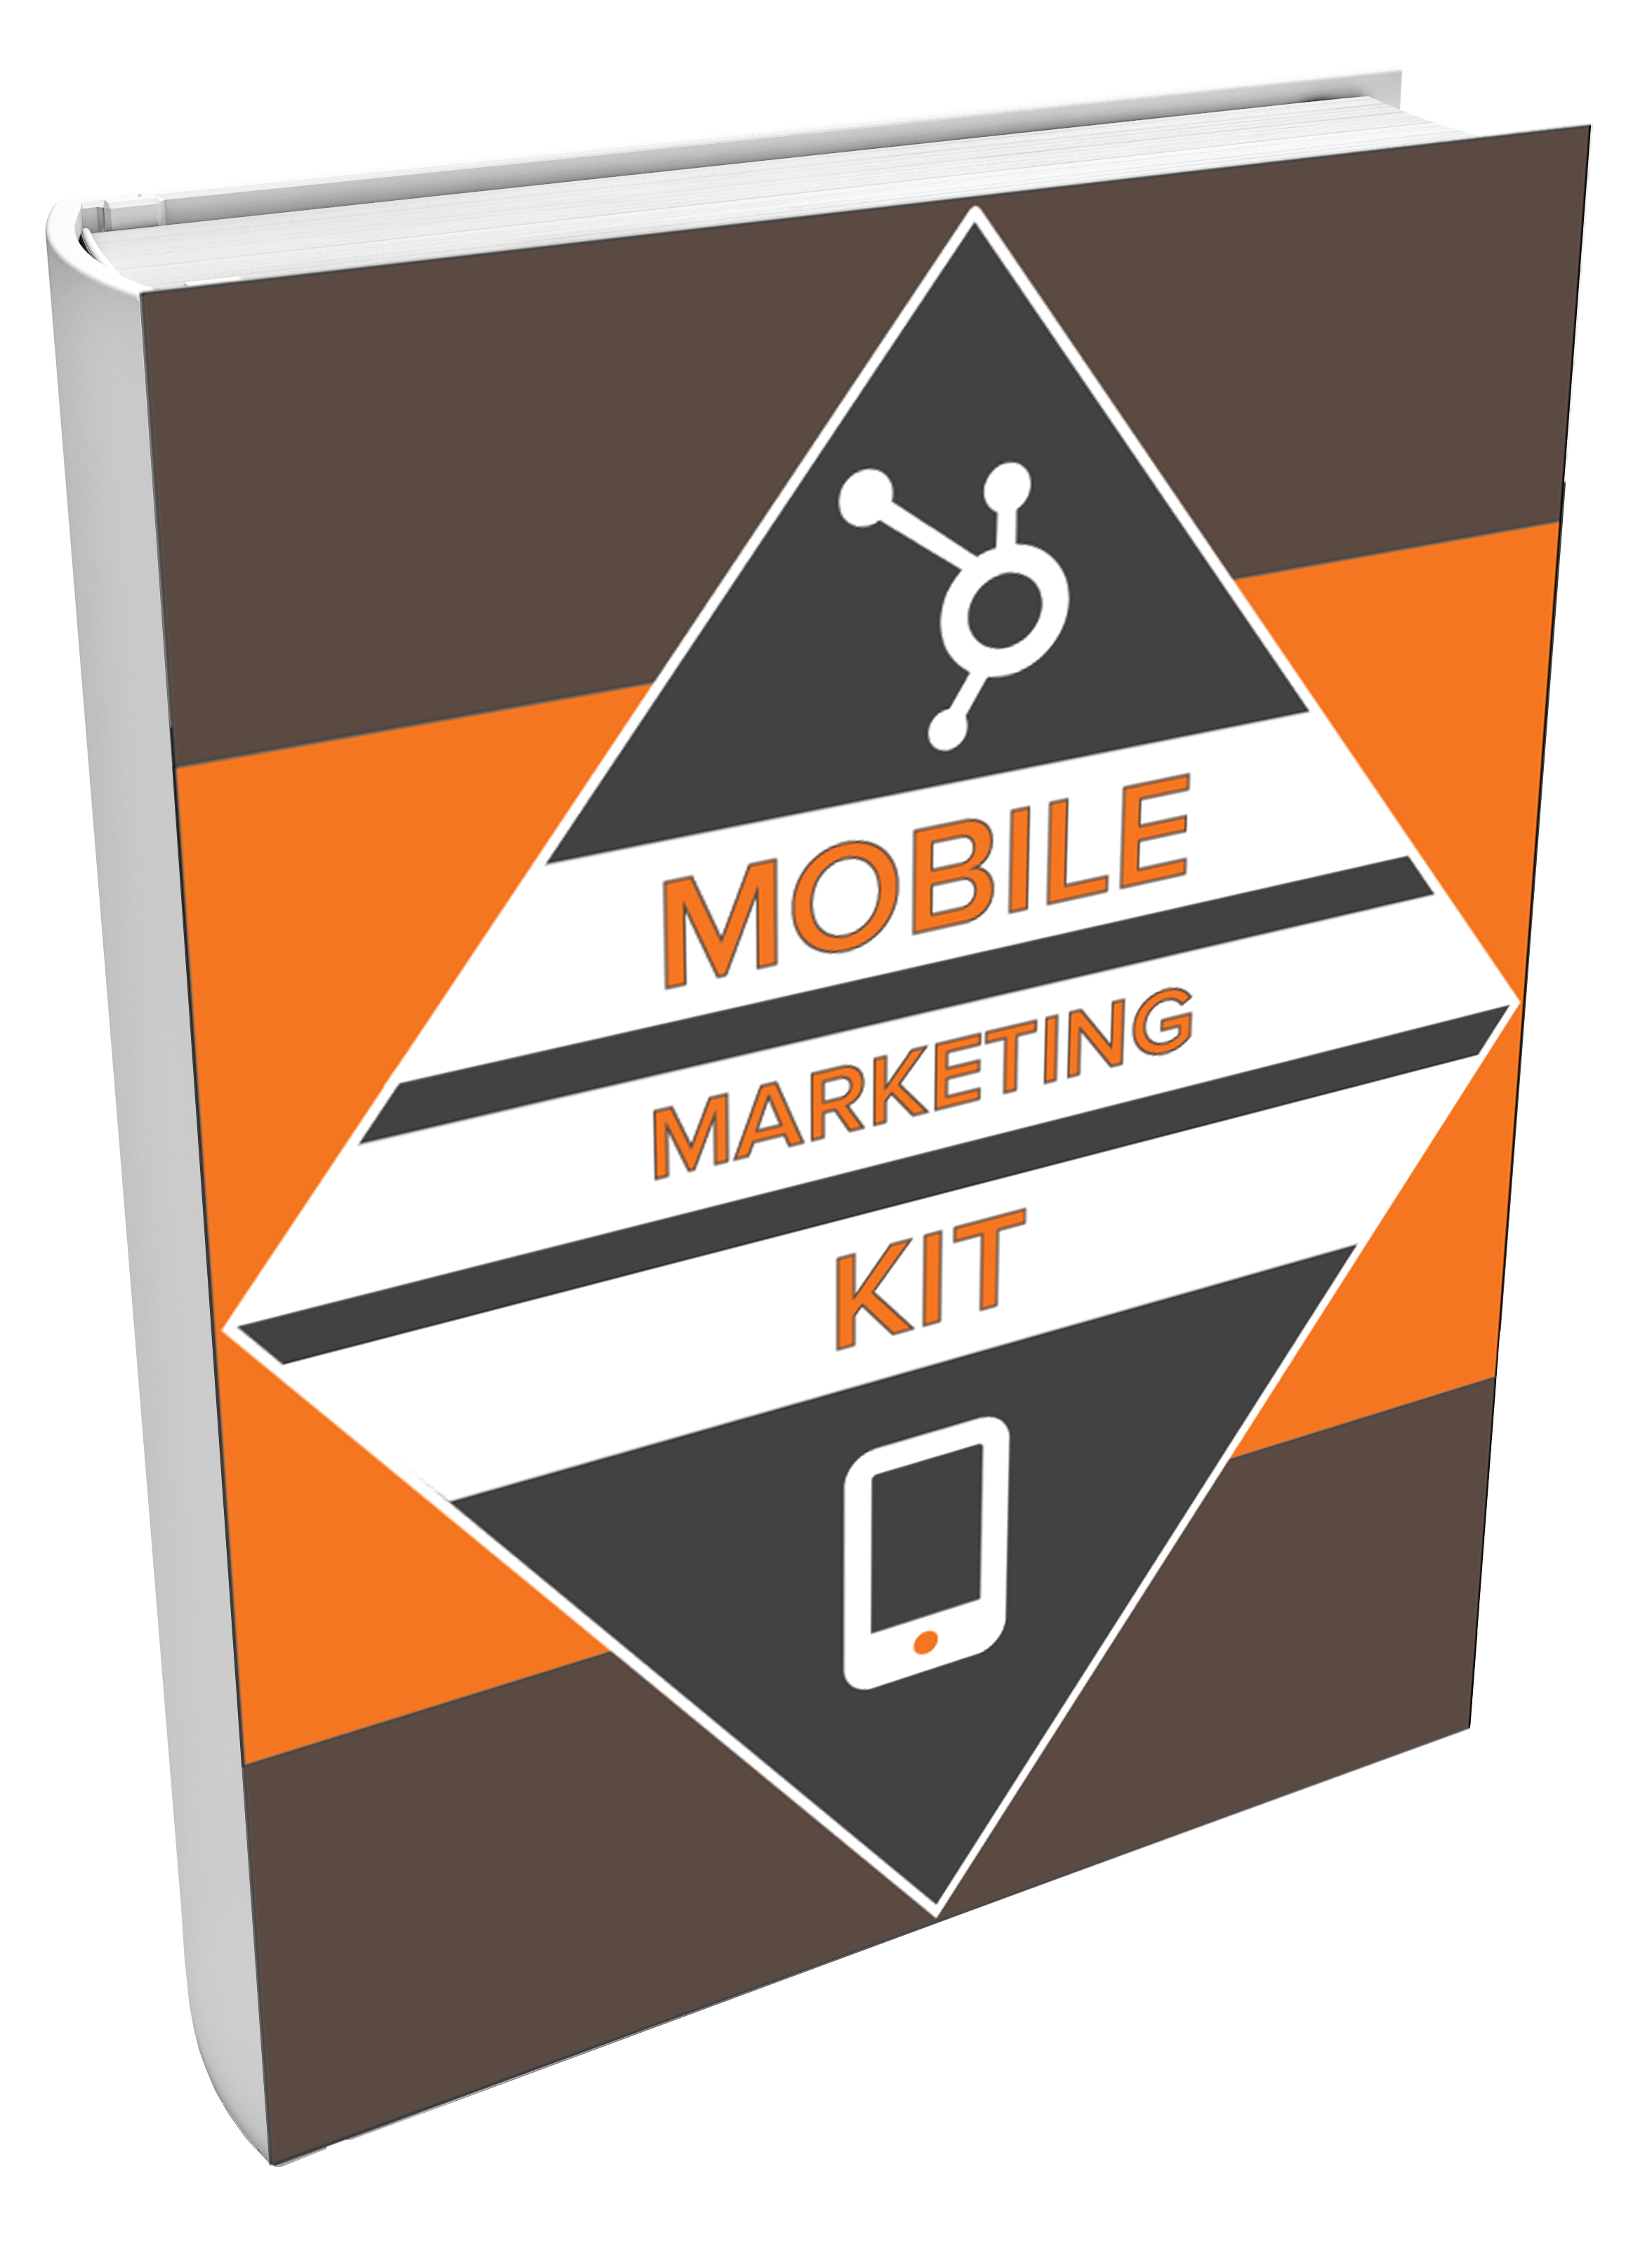 Mobile Marketing Kit